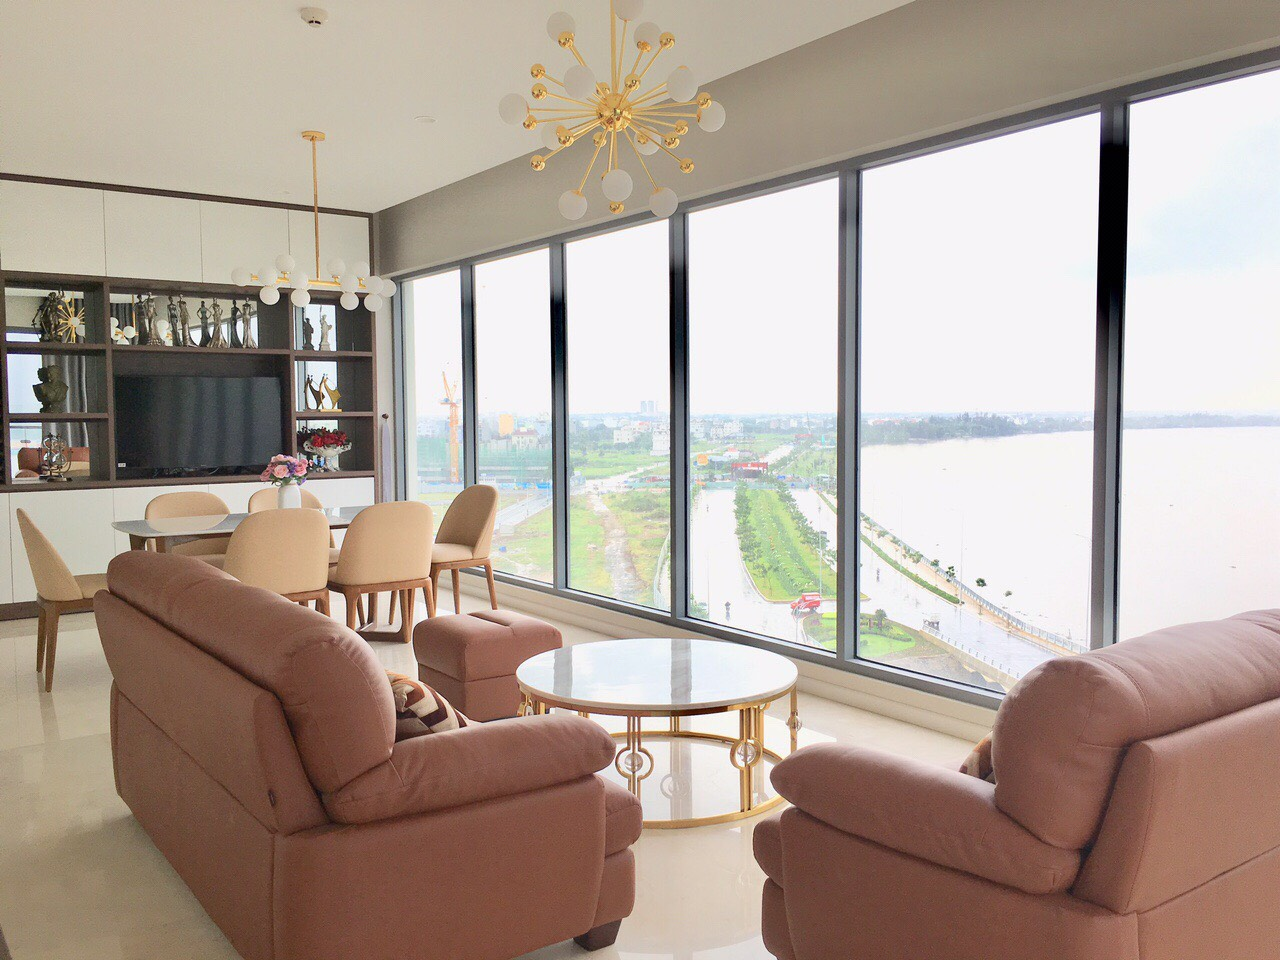 diamond island apartment for rent in district 2 hcmc D210291 (12)